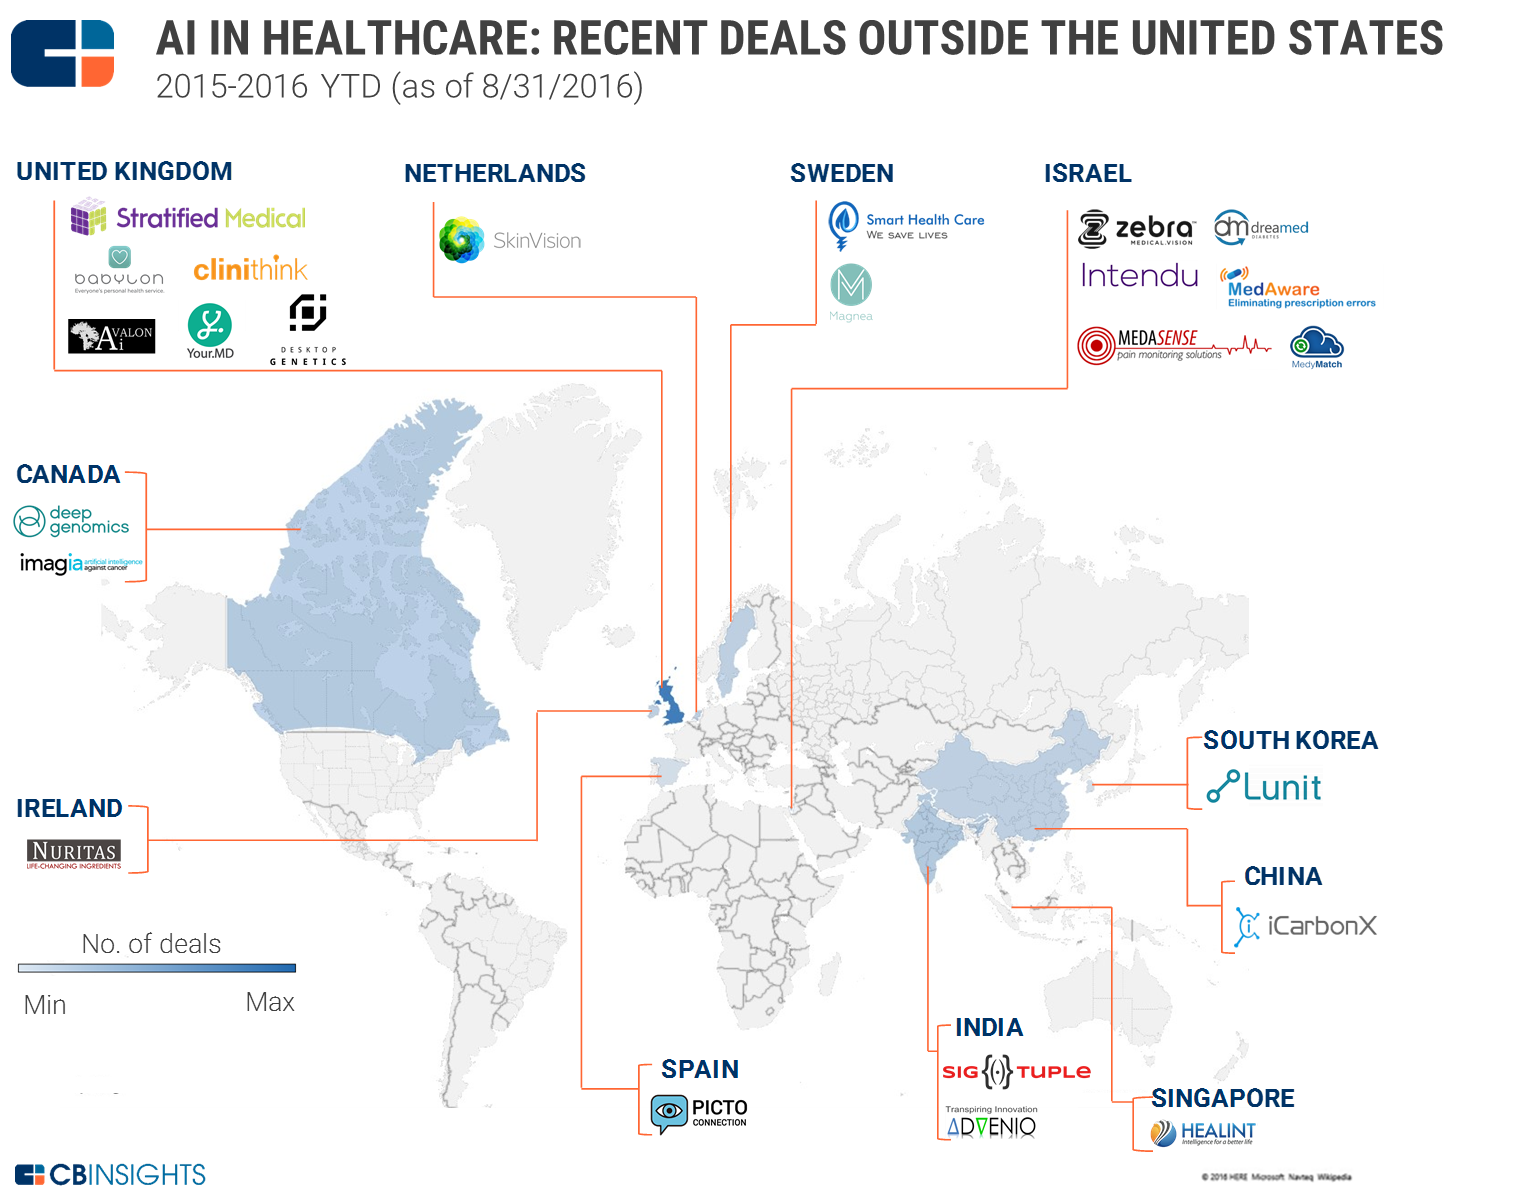 AI_healthcare_deals_outside_US